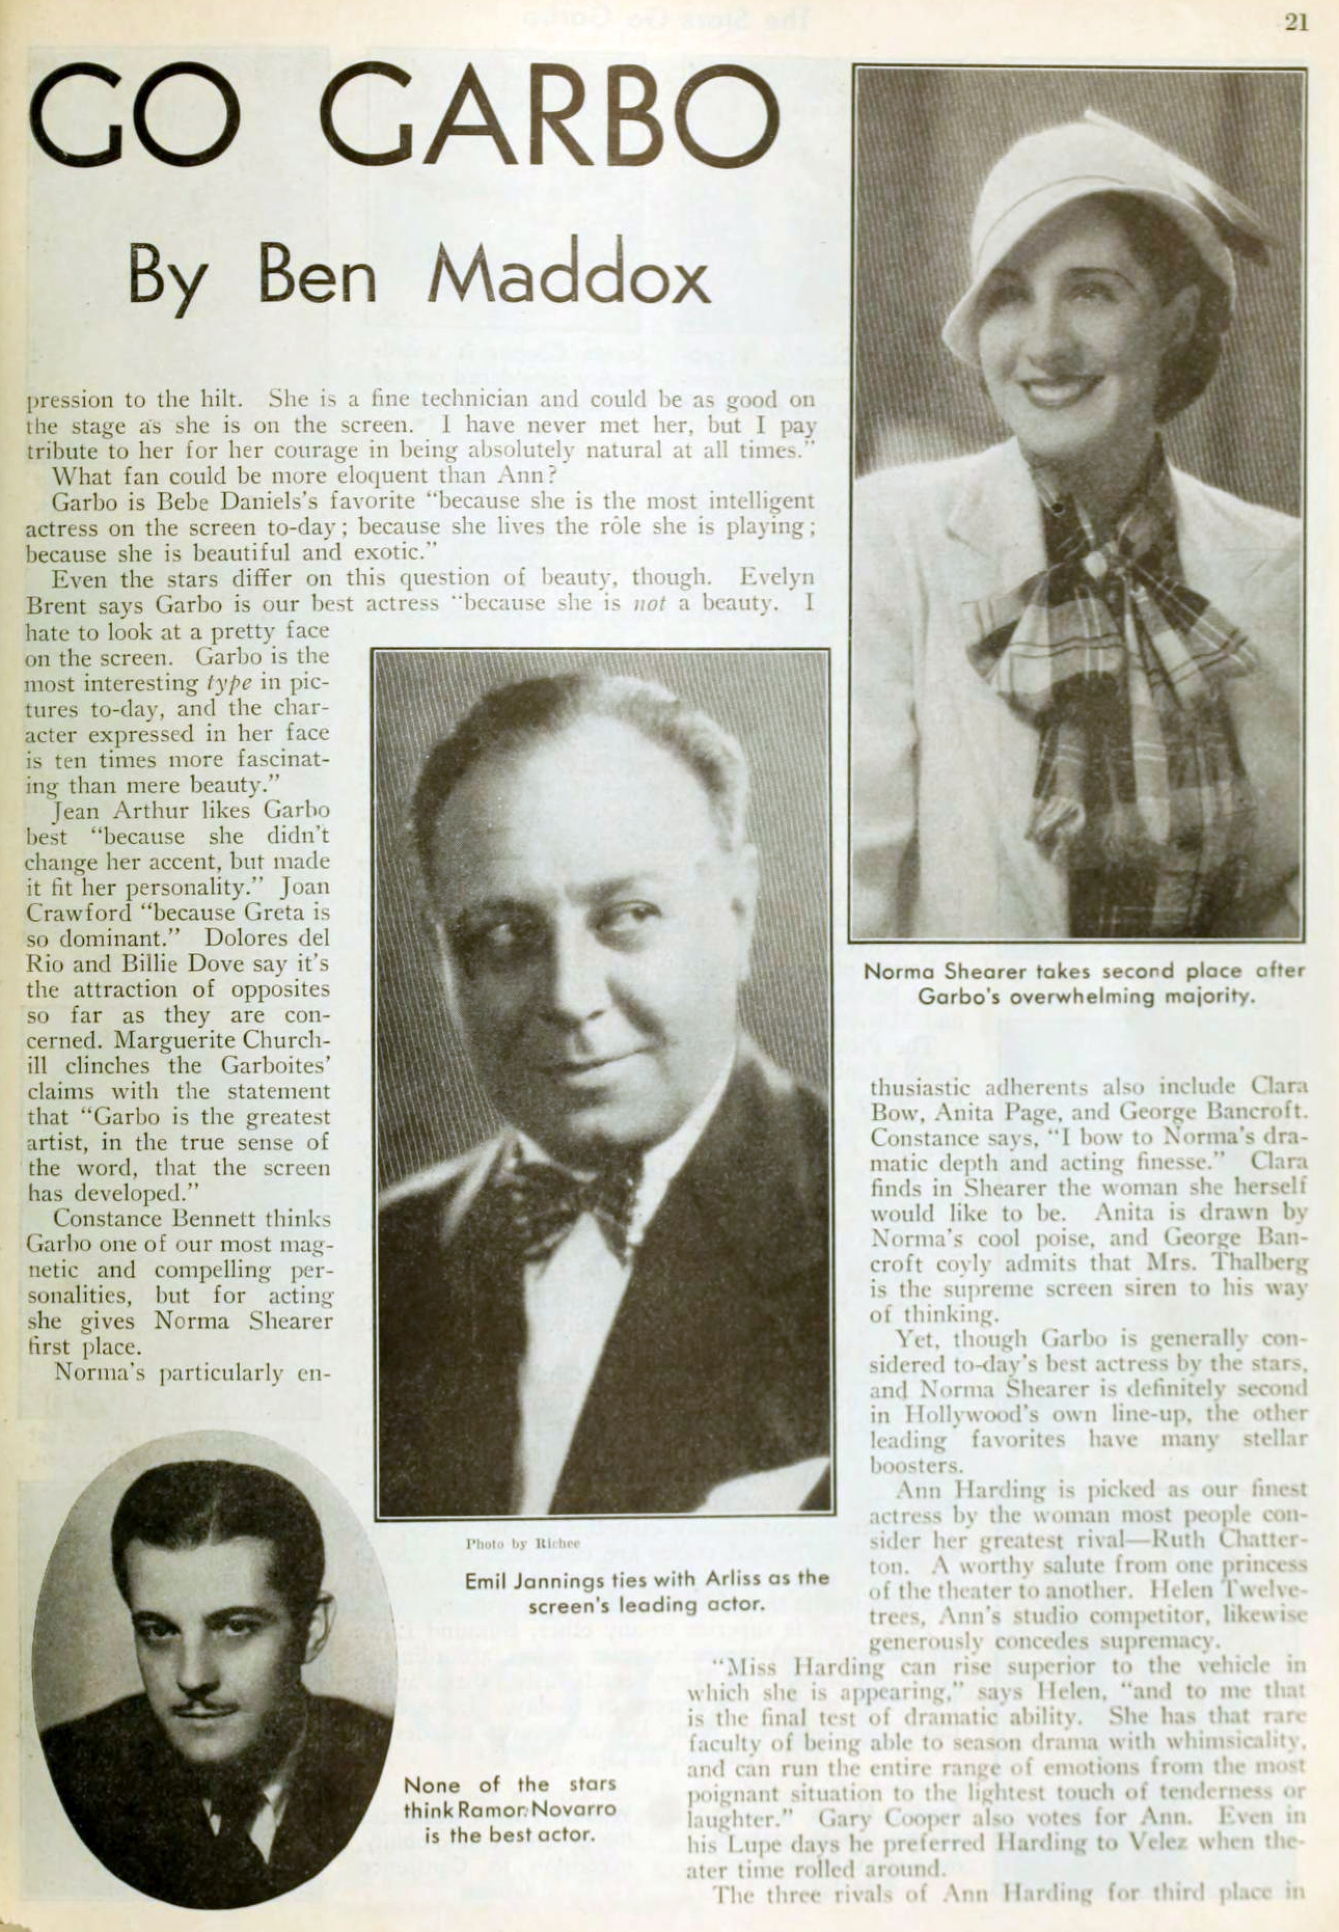 carole lombard picture play march 1932 the stars go garbo 01a